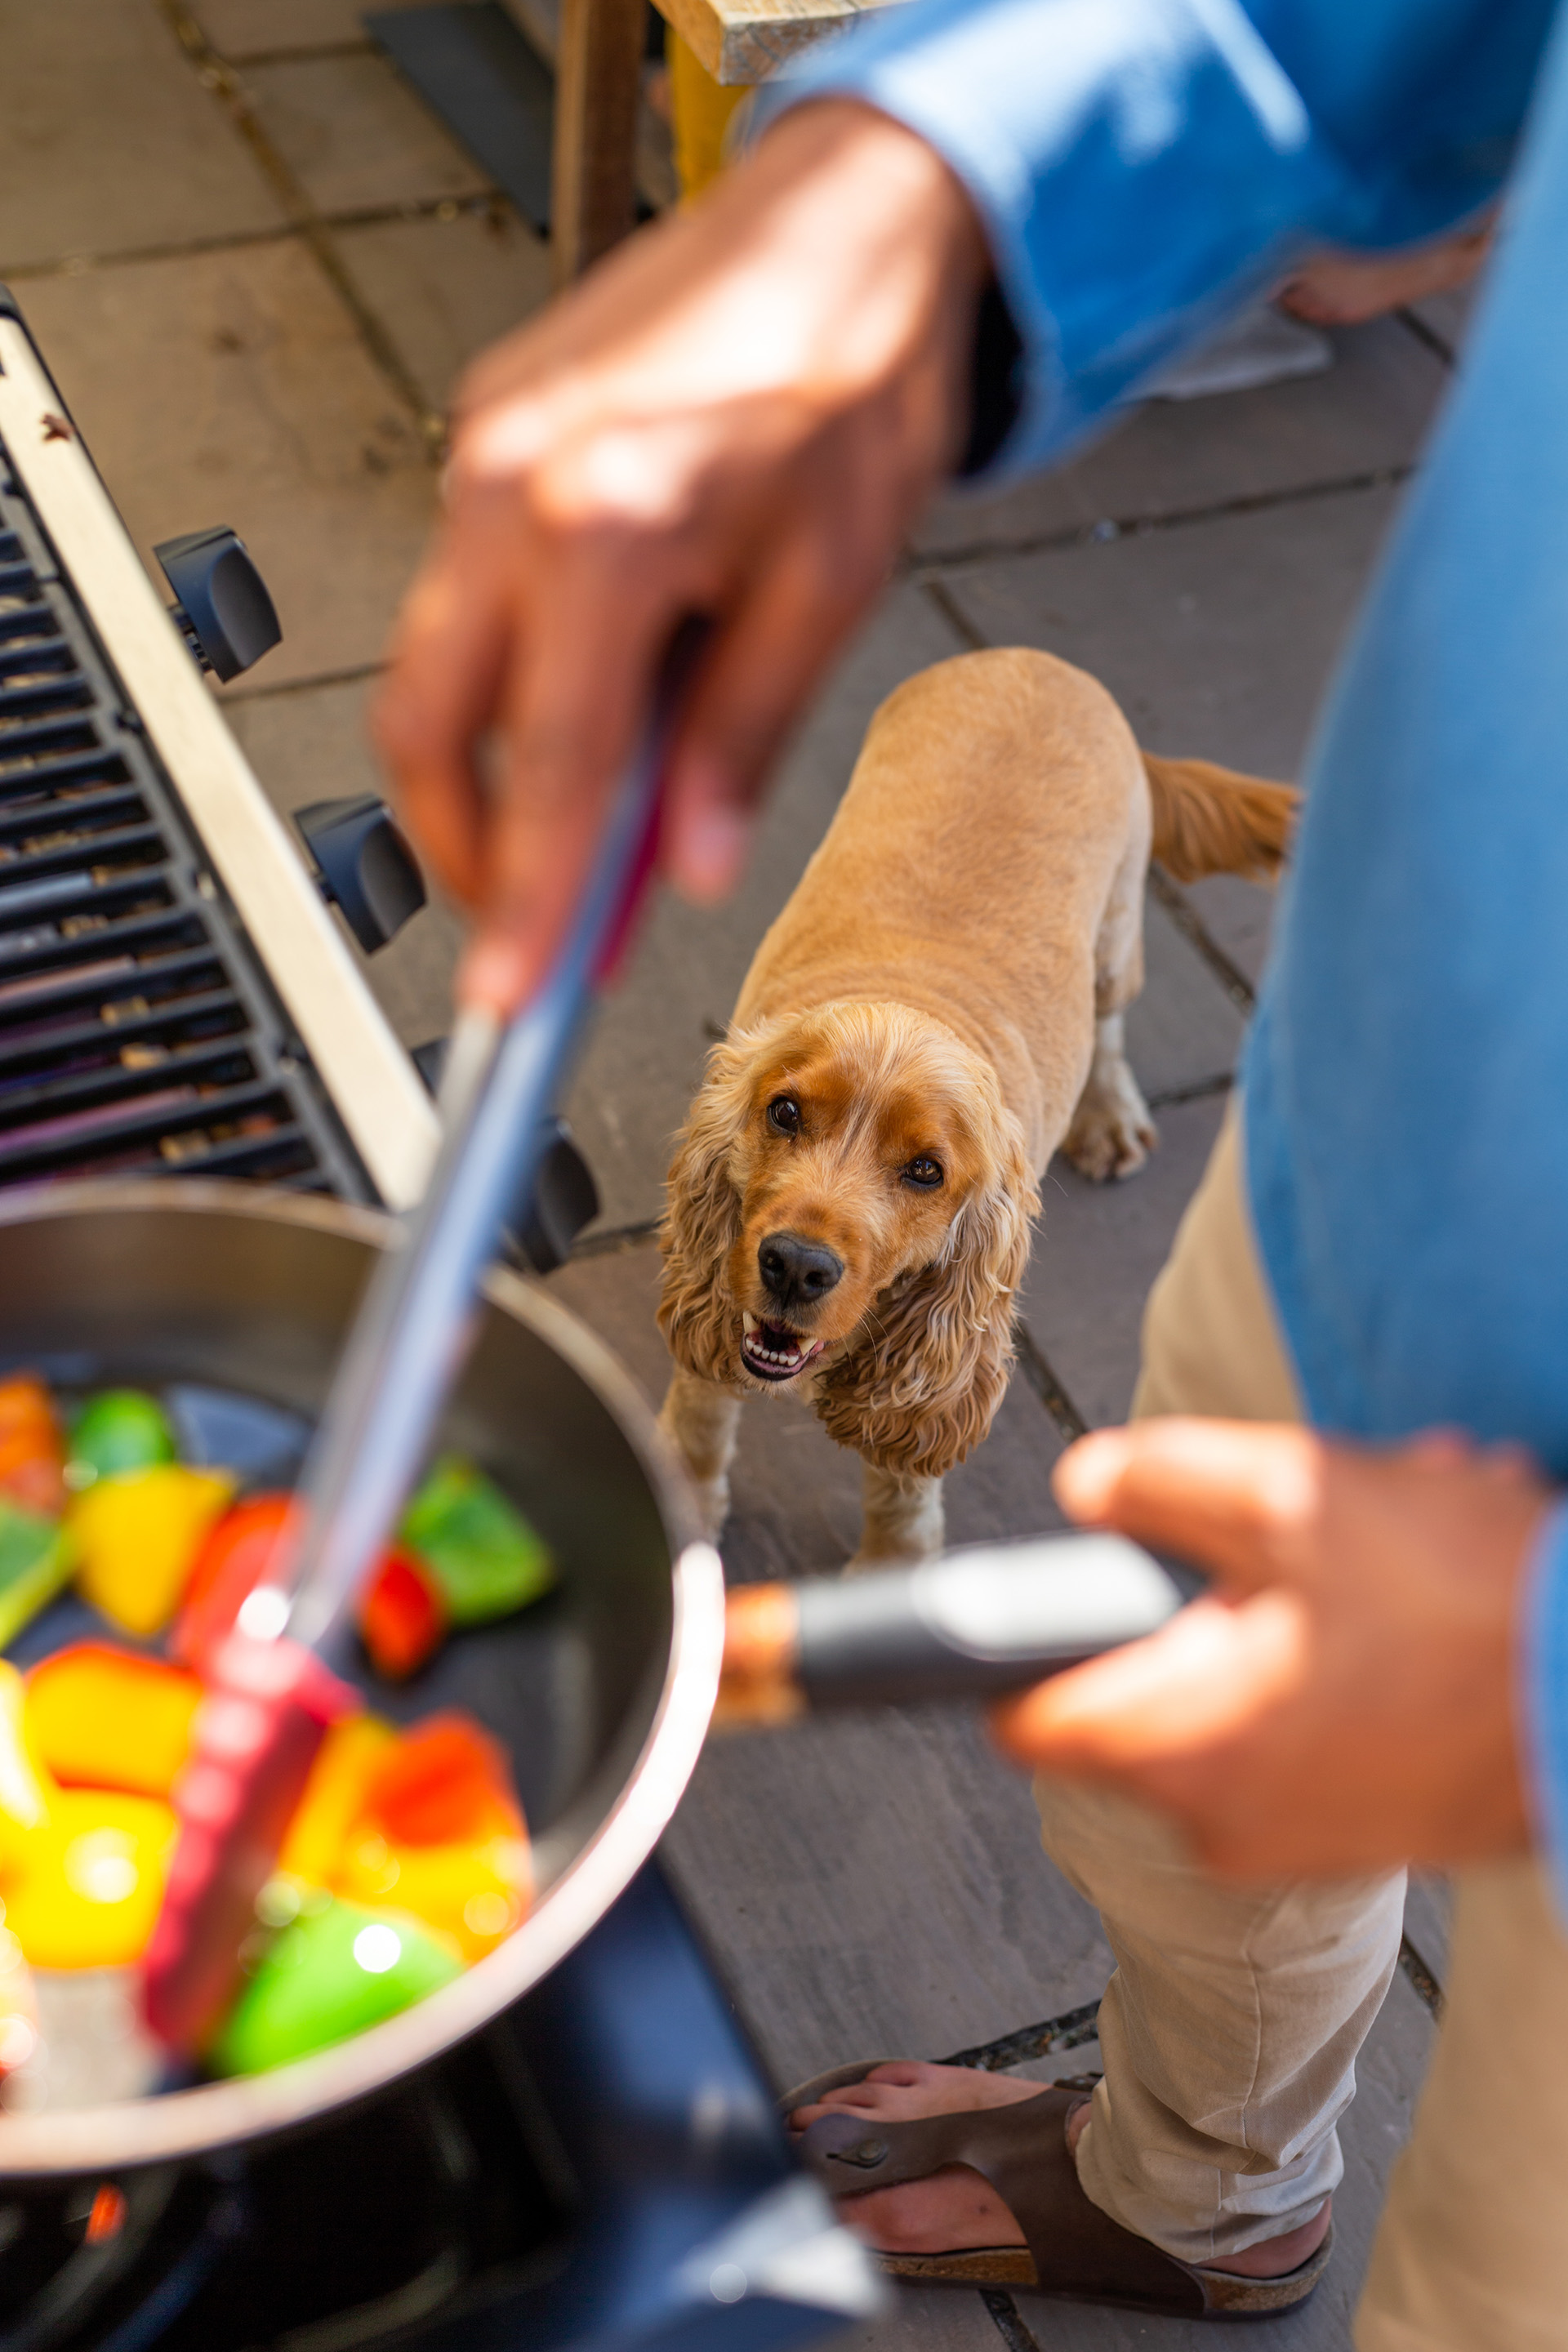 A dog looking up at food being cooked on the BBQ